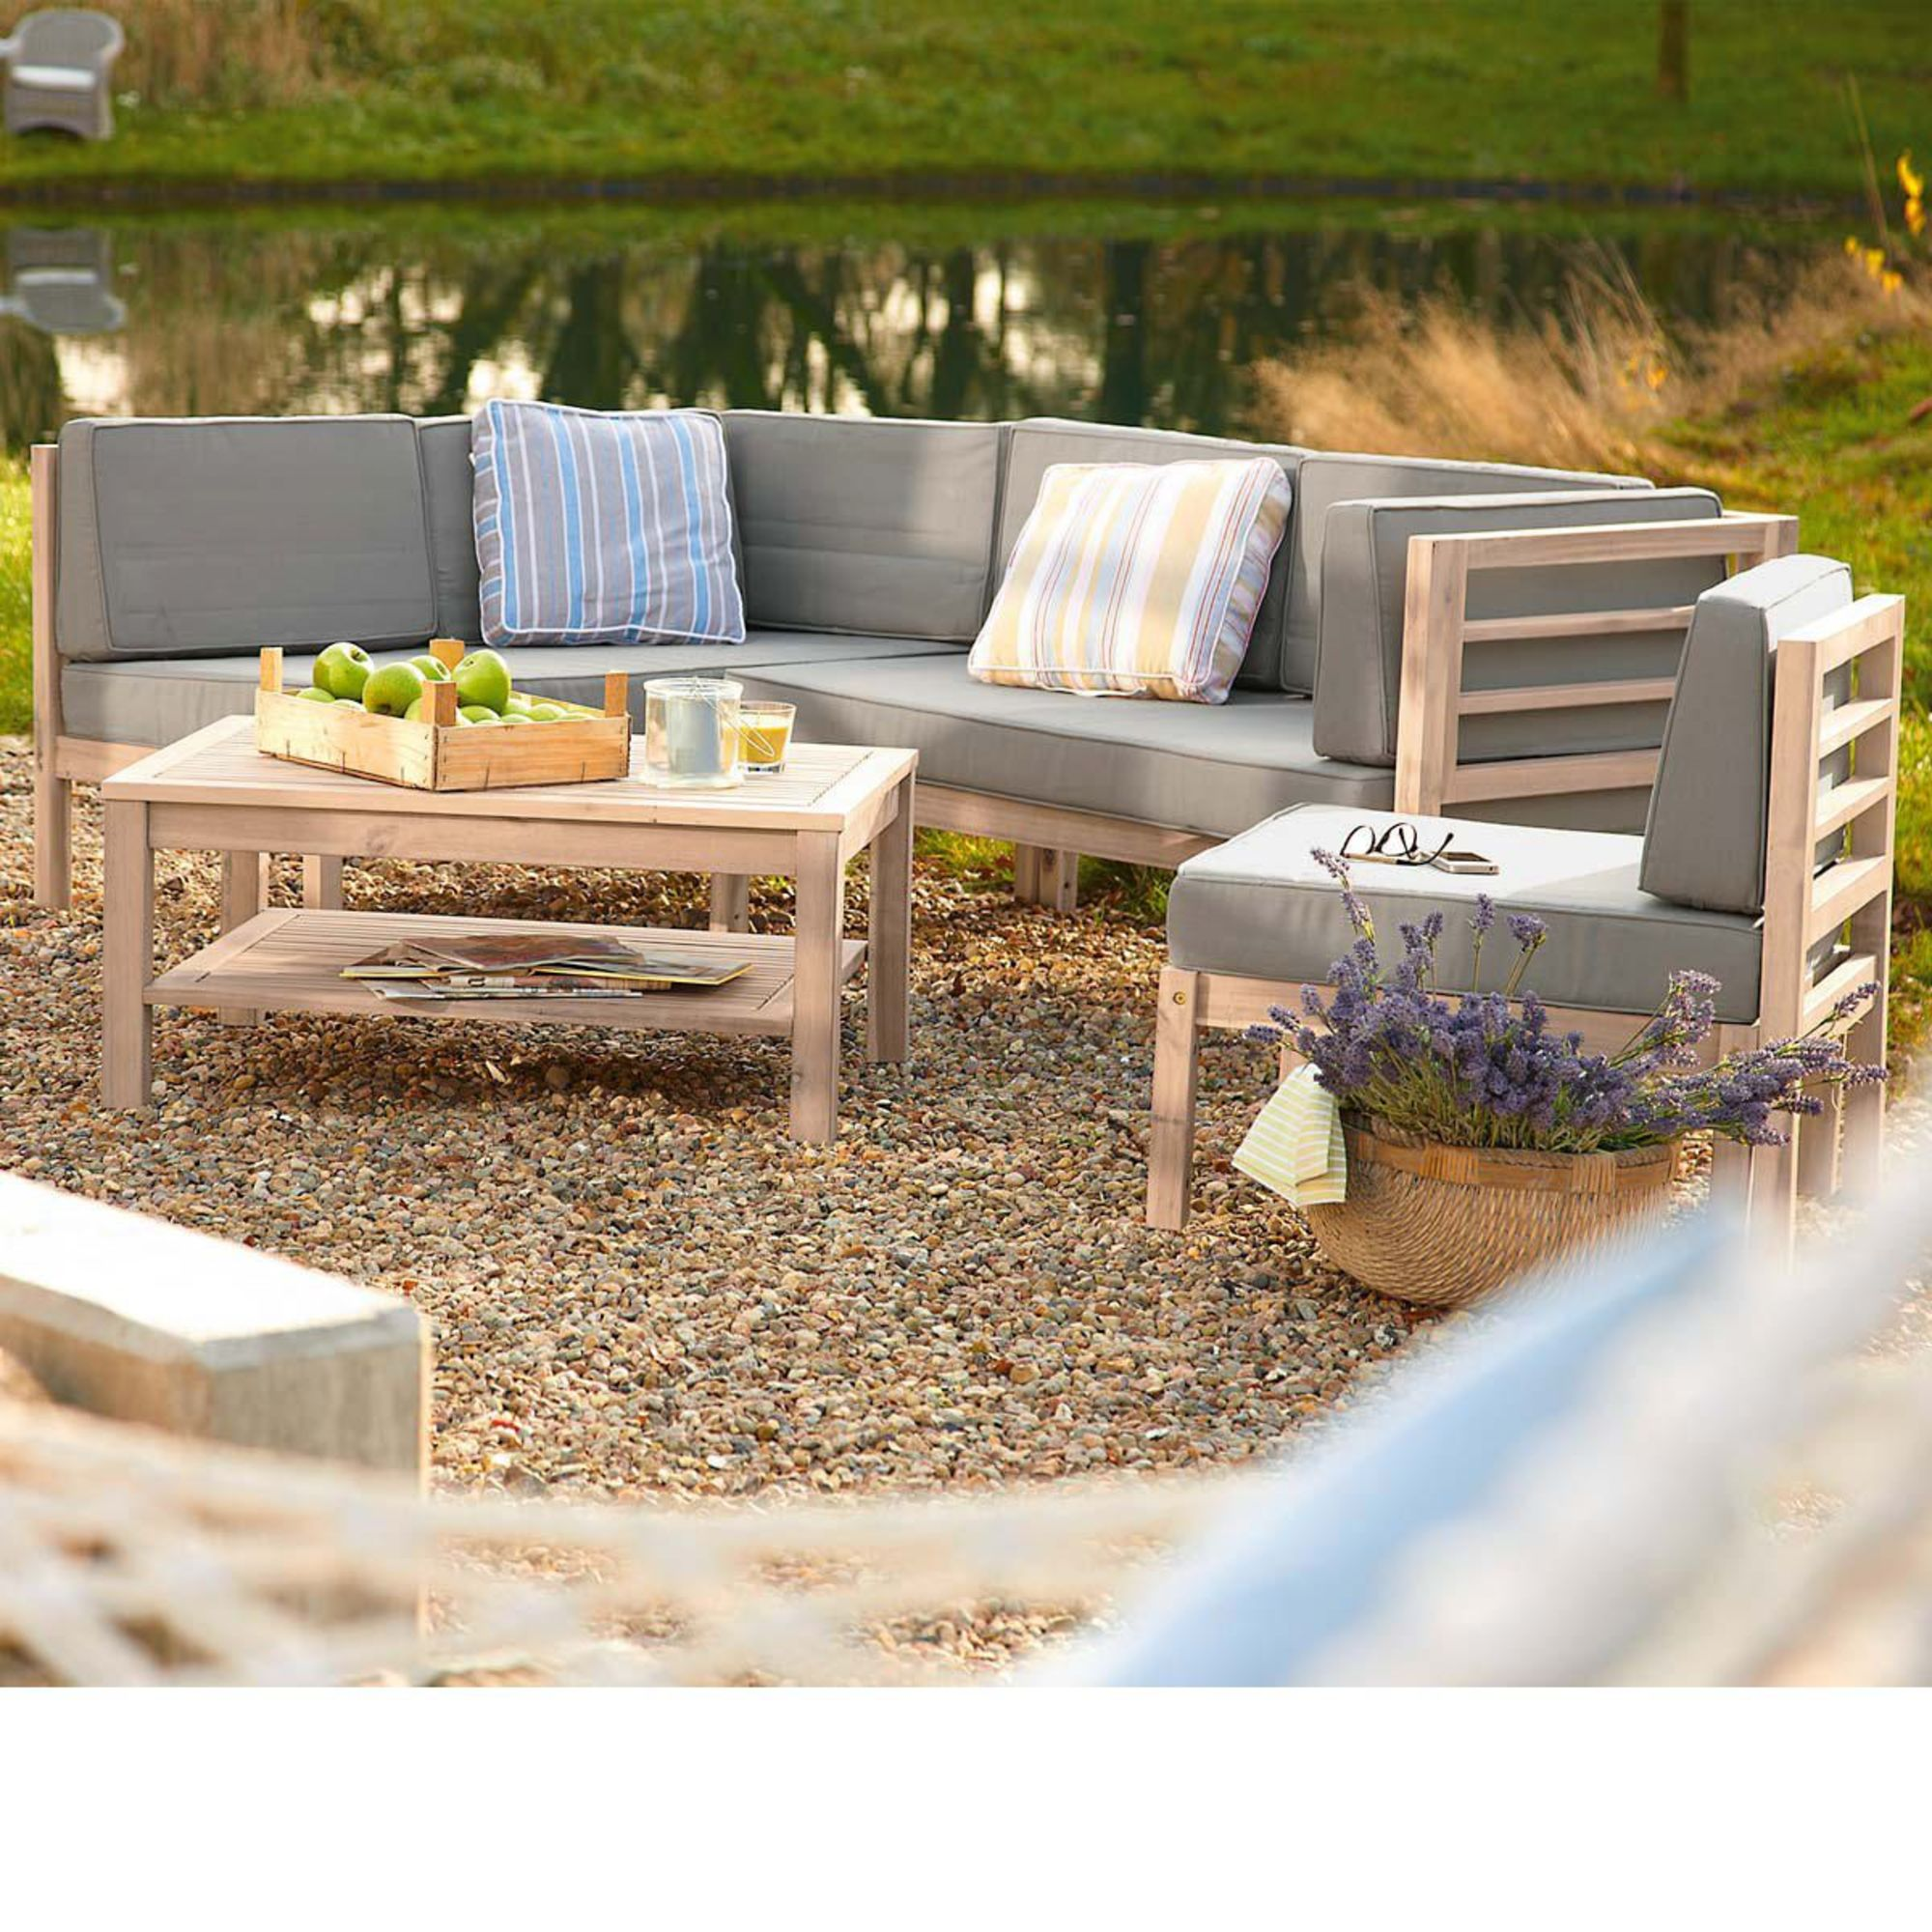 Gastrombel Lounge. Good Most Comfortable Outdoor Furniture Ideas ...